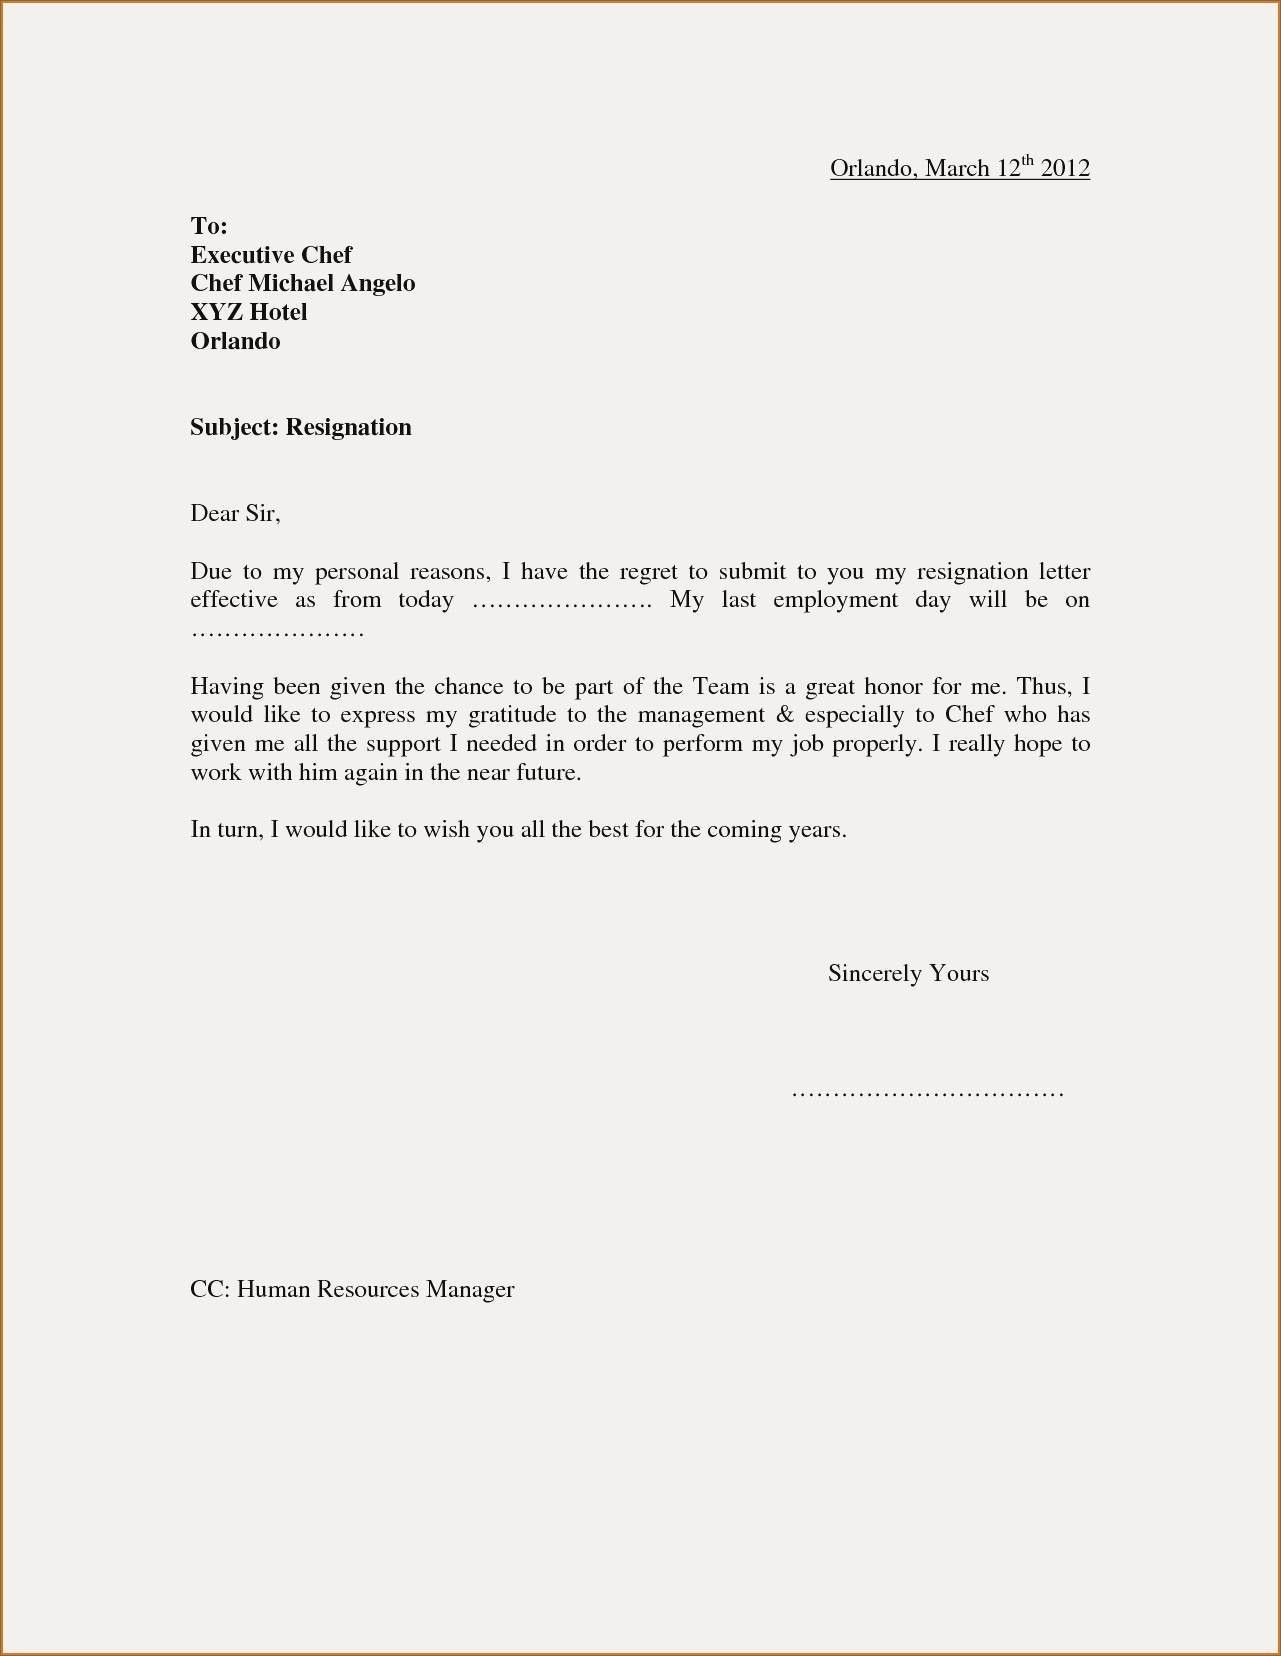 Download Fresh How To Write A Quit Letter To Your Job Lettersample Letterfo Resignation Letter Sample Formal Resignation Letter Sample Job Resignation Letter Free template for resignation letter